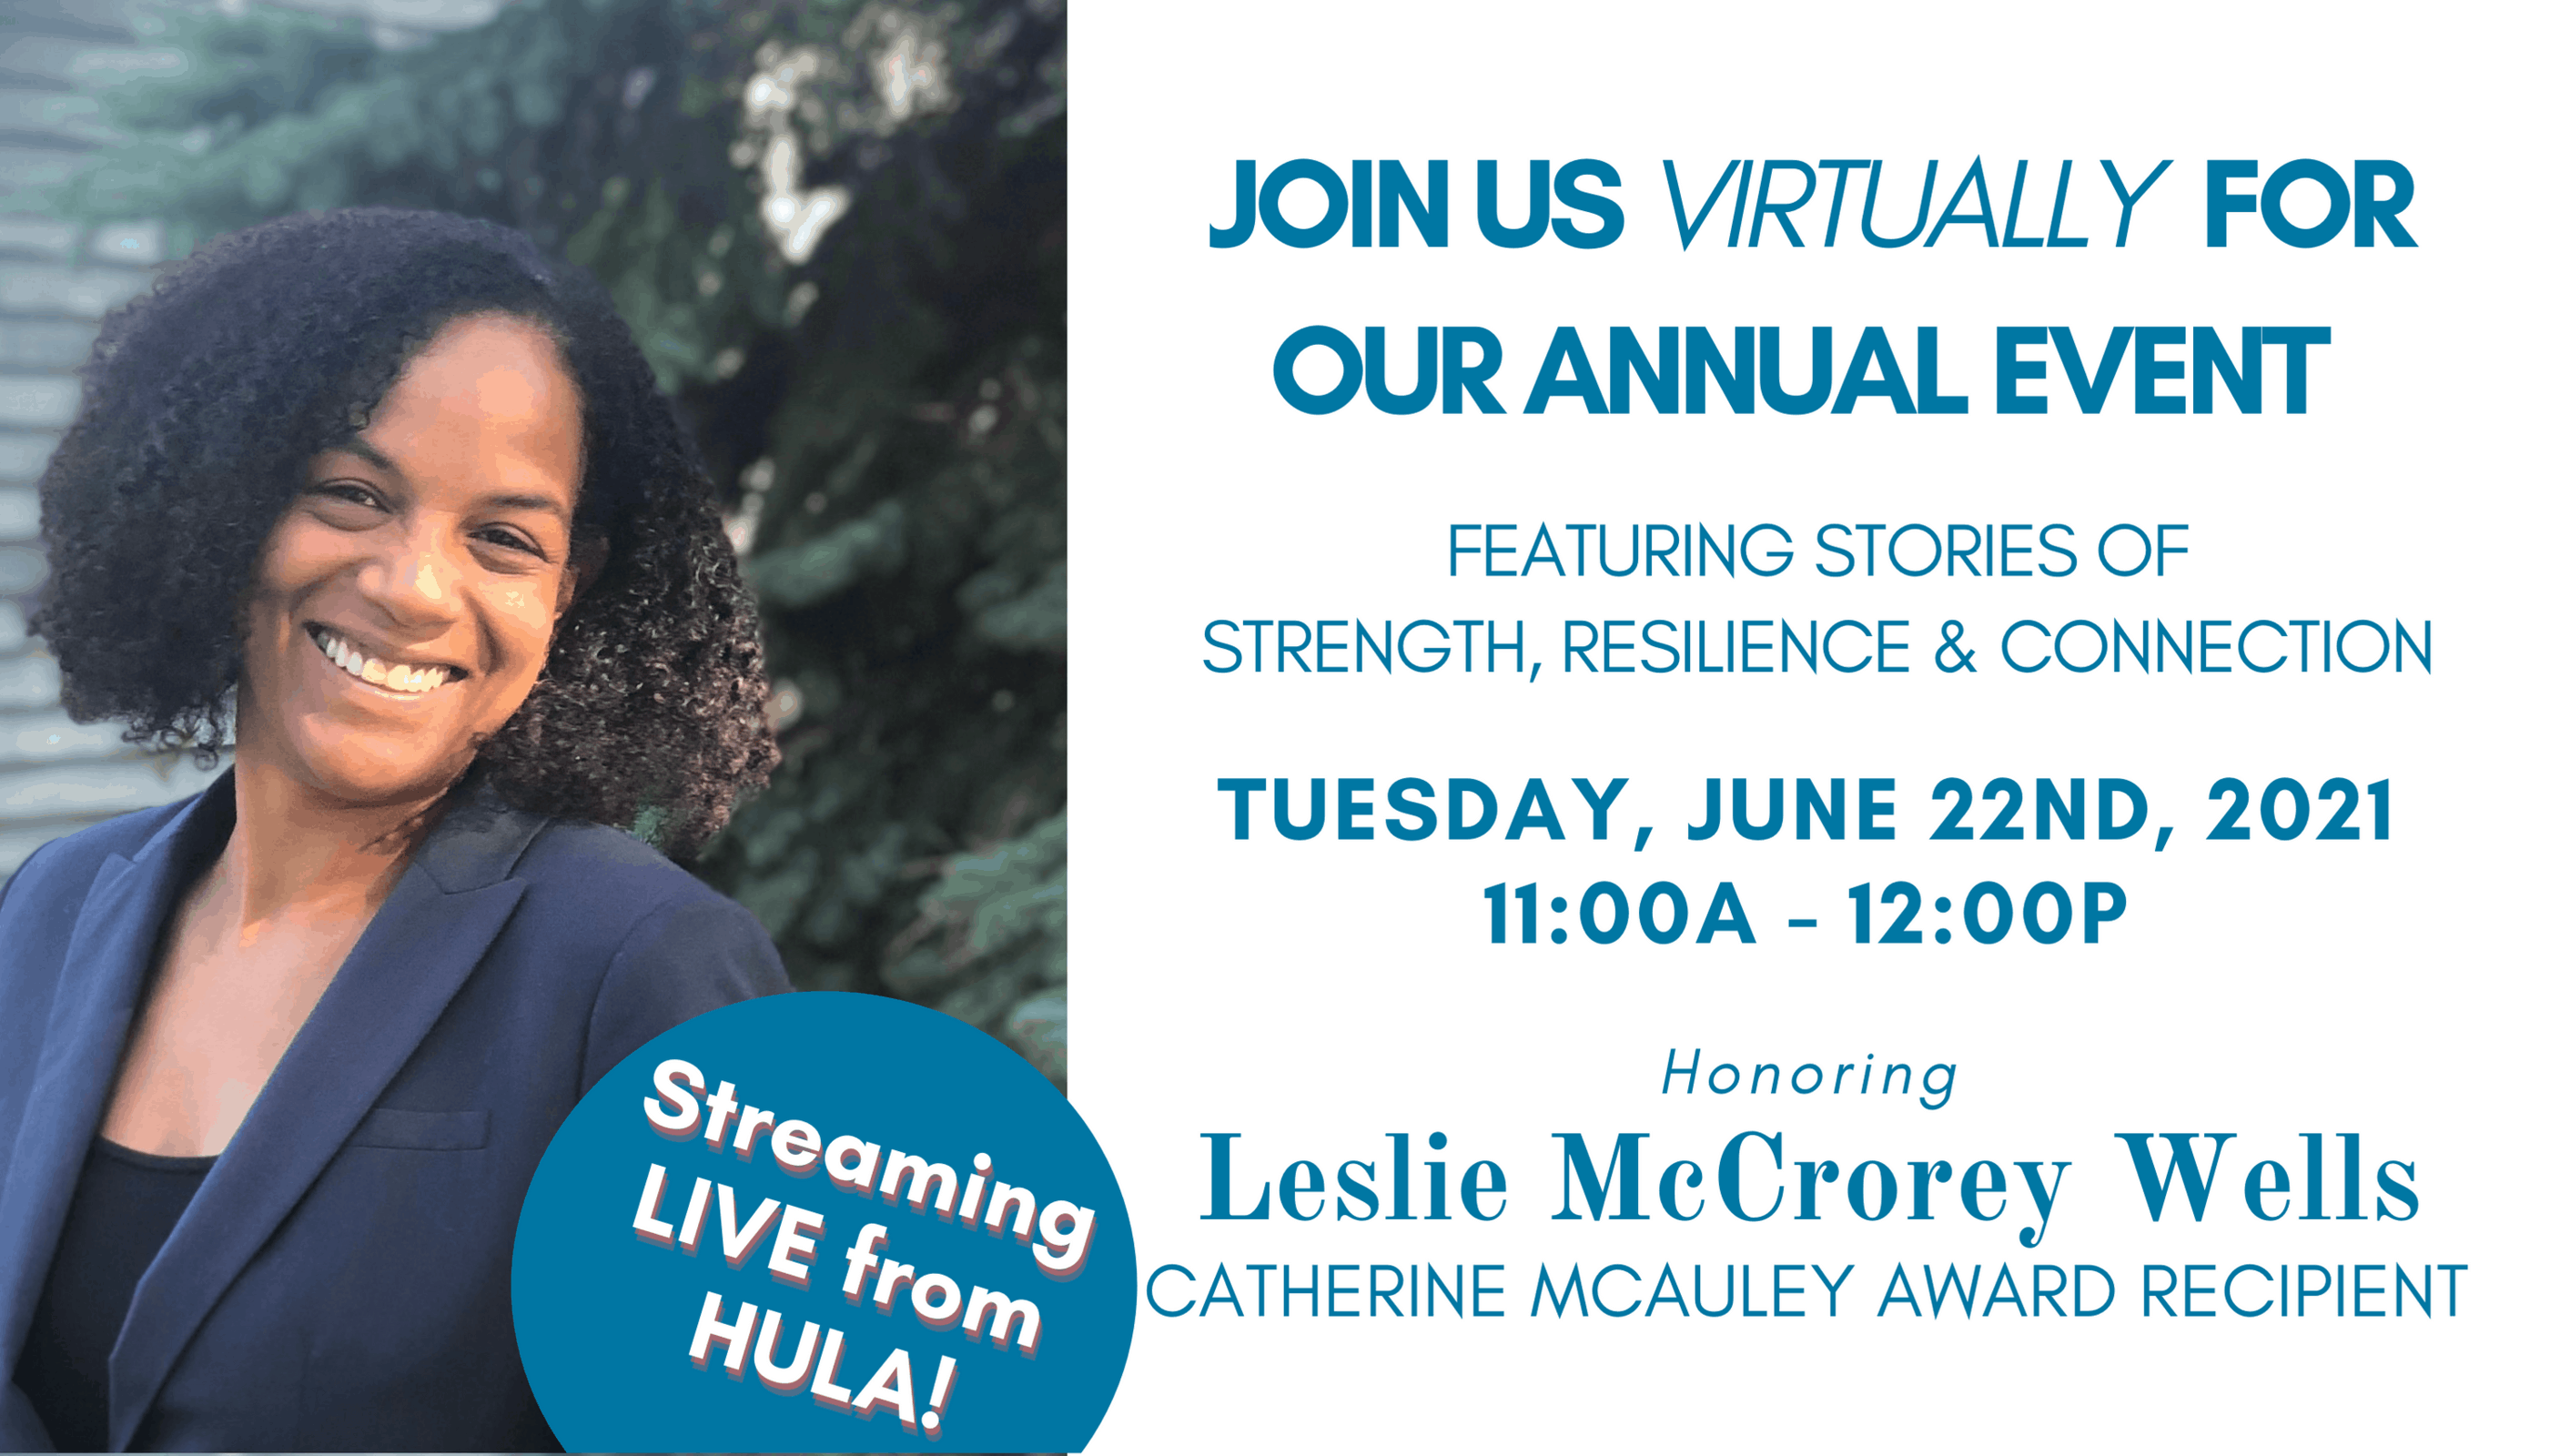 Join us virtually for our annual event